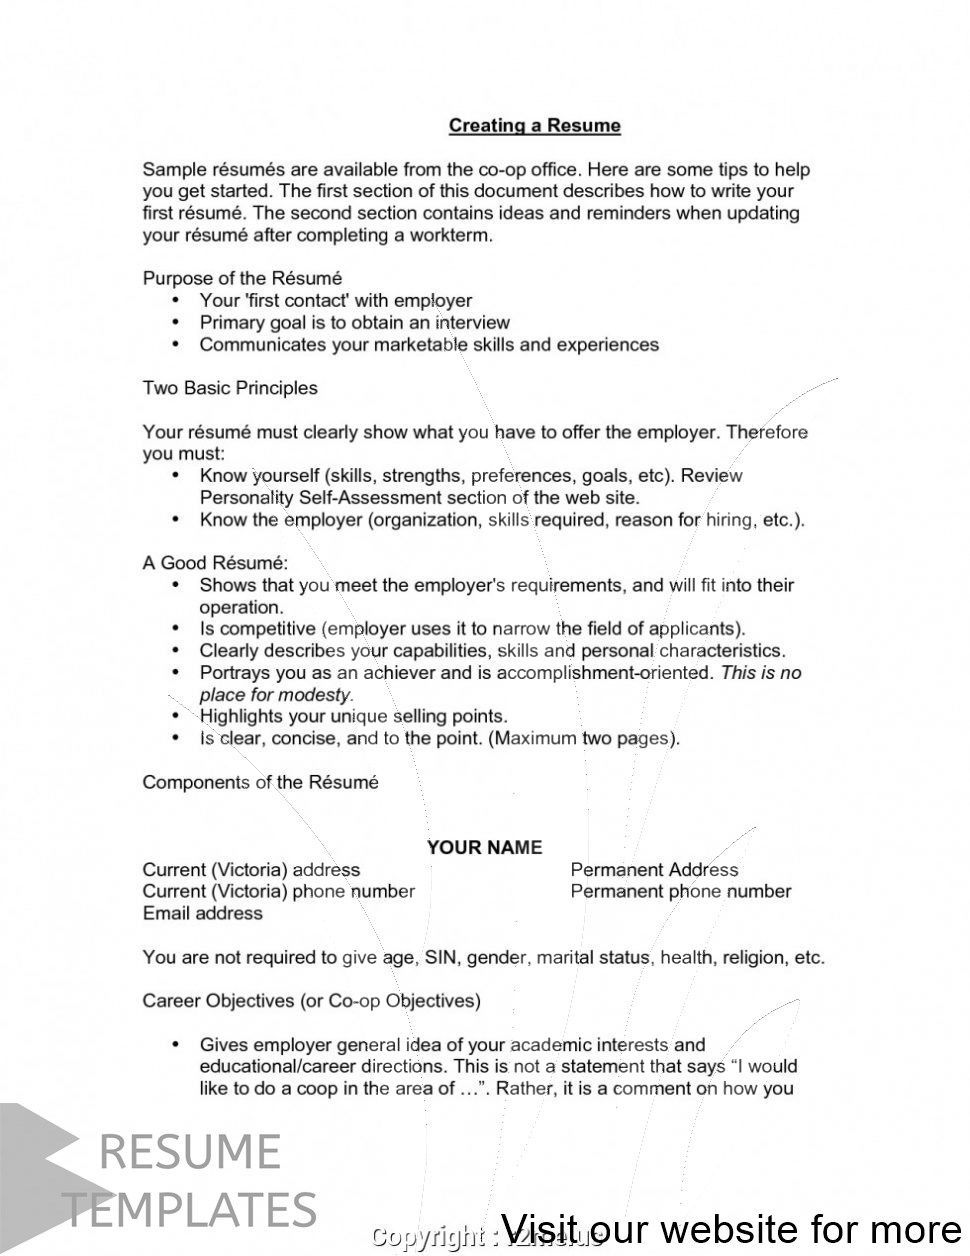 best free resume builder site cover letter examples for template personal characteristics Resume Personal Characteristics Examples For Resume